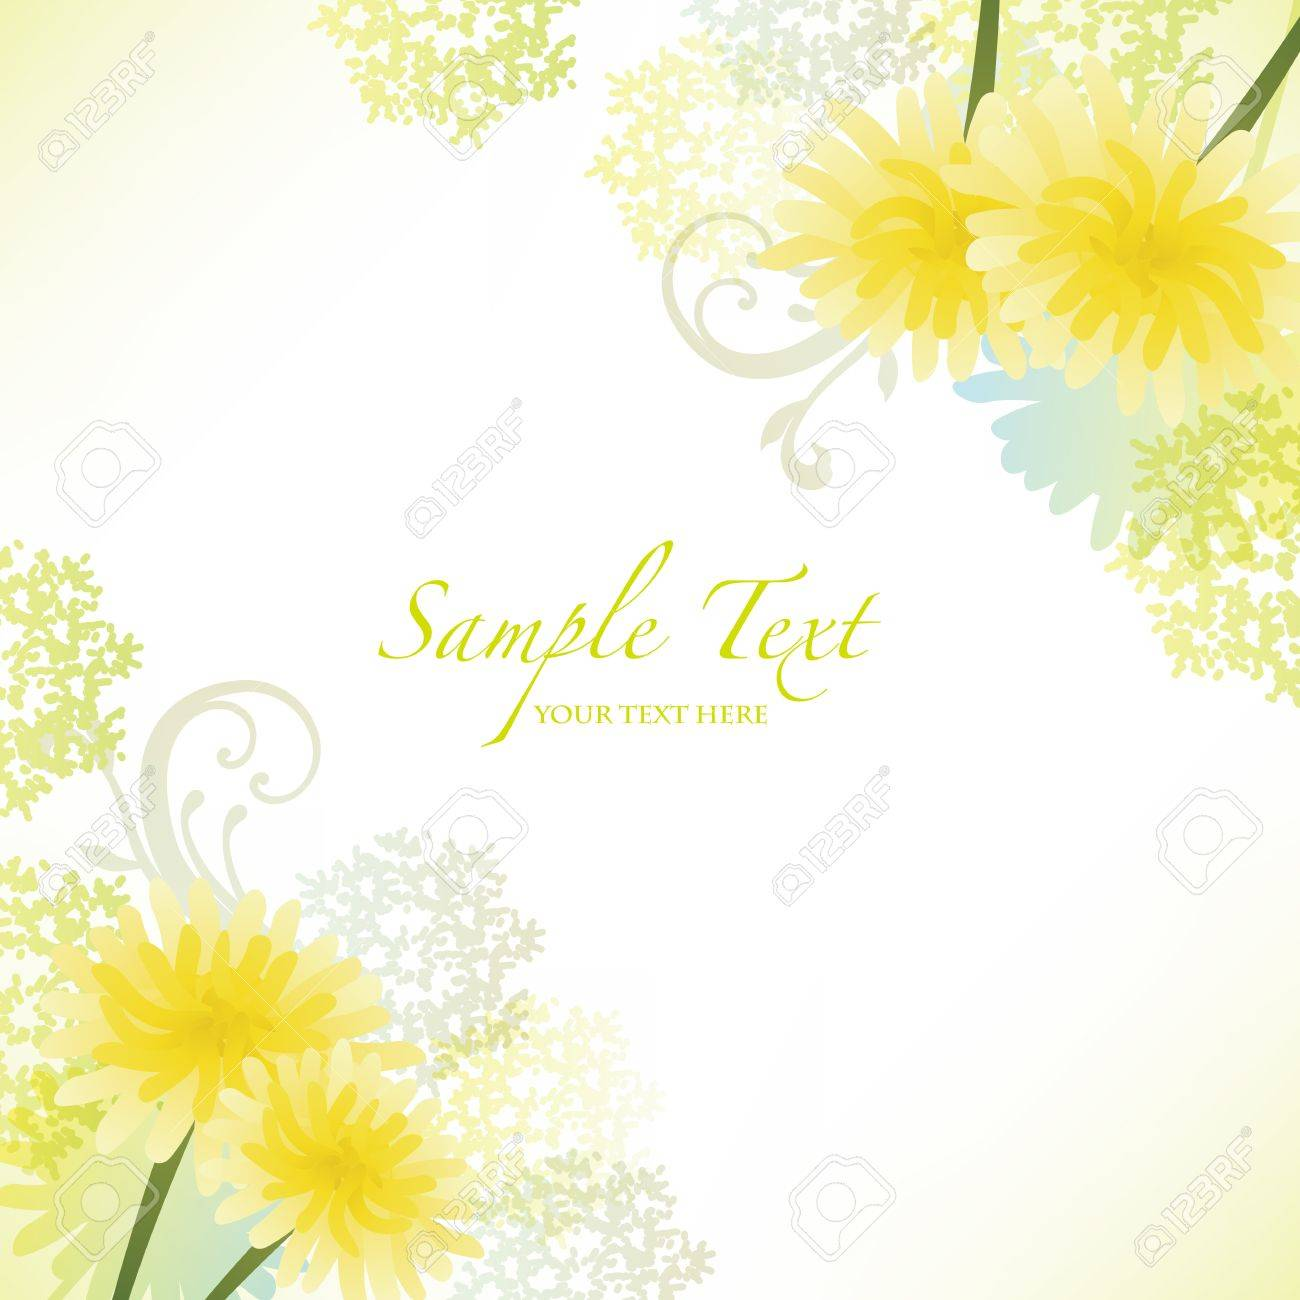 spring background with dandelion - 17476917